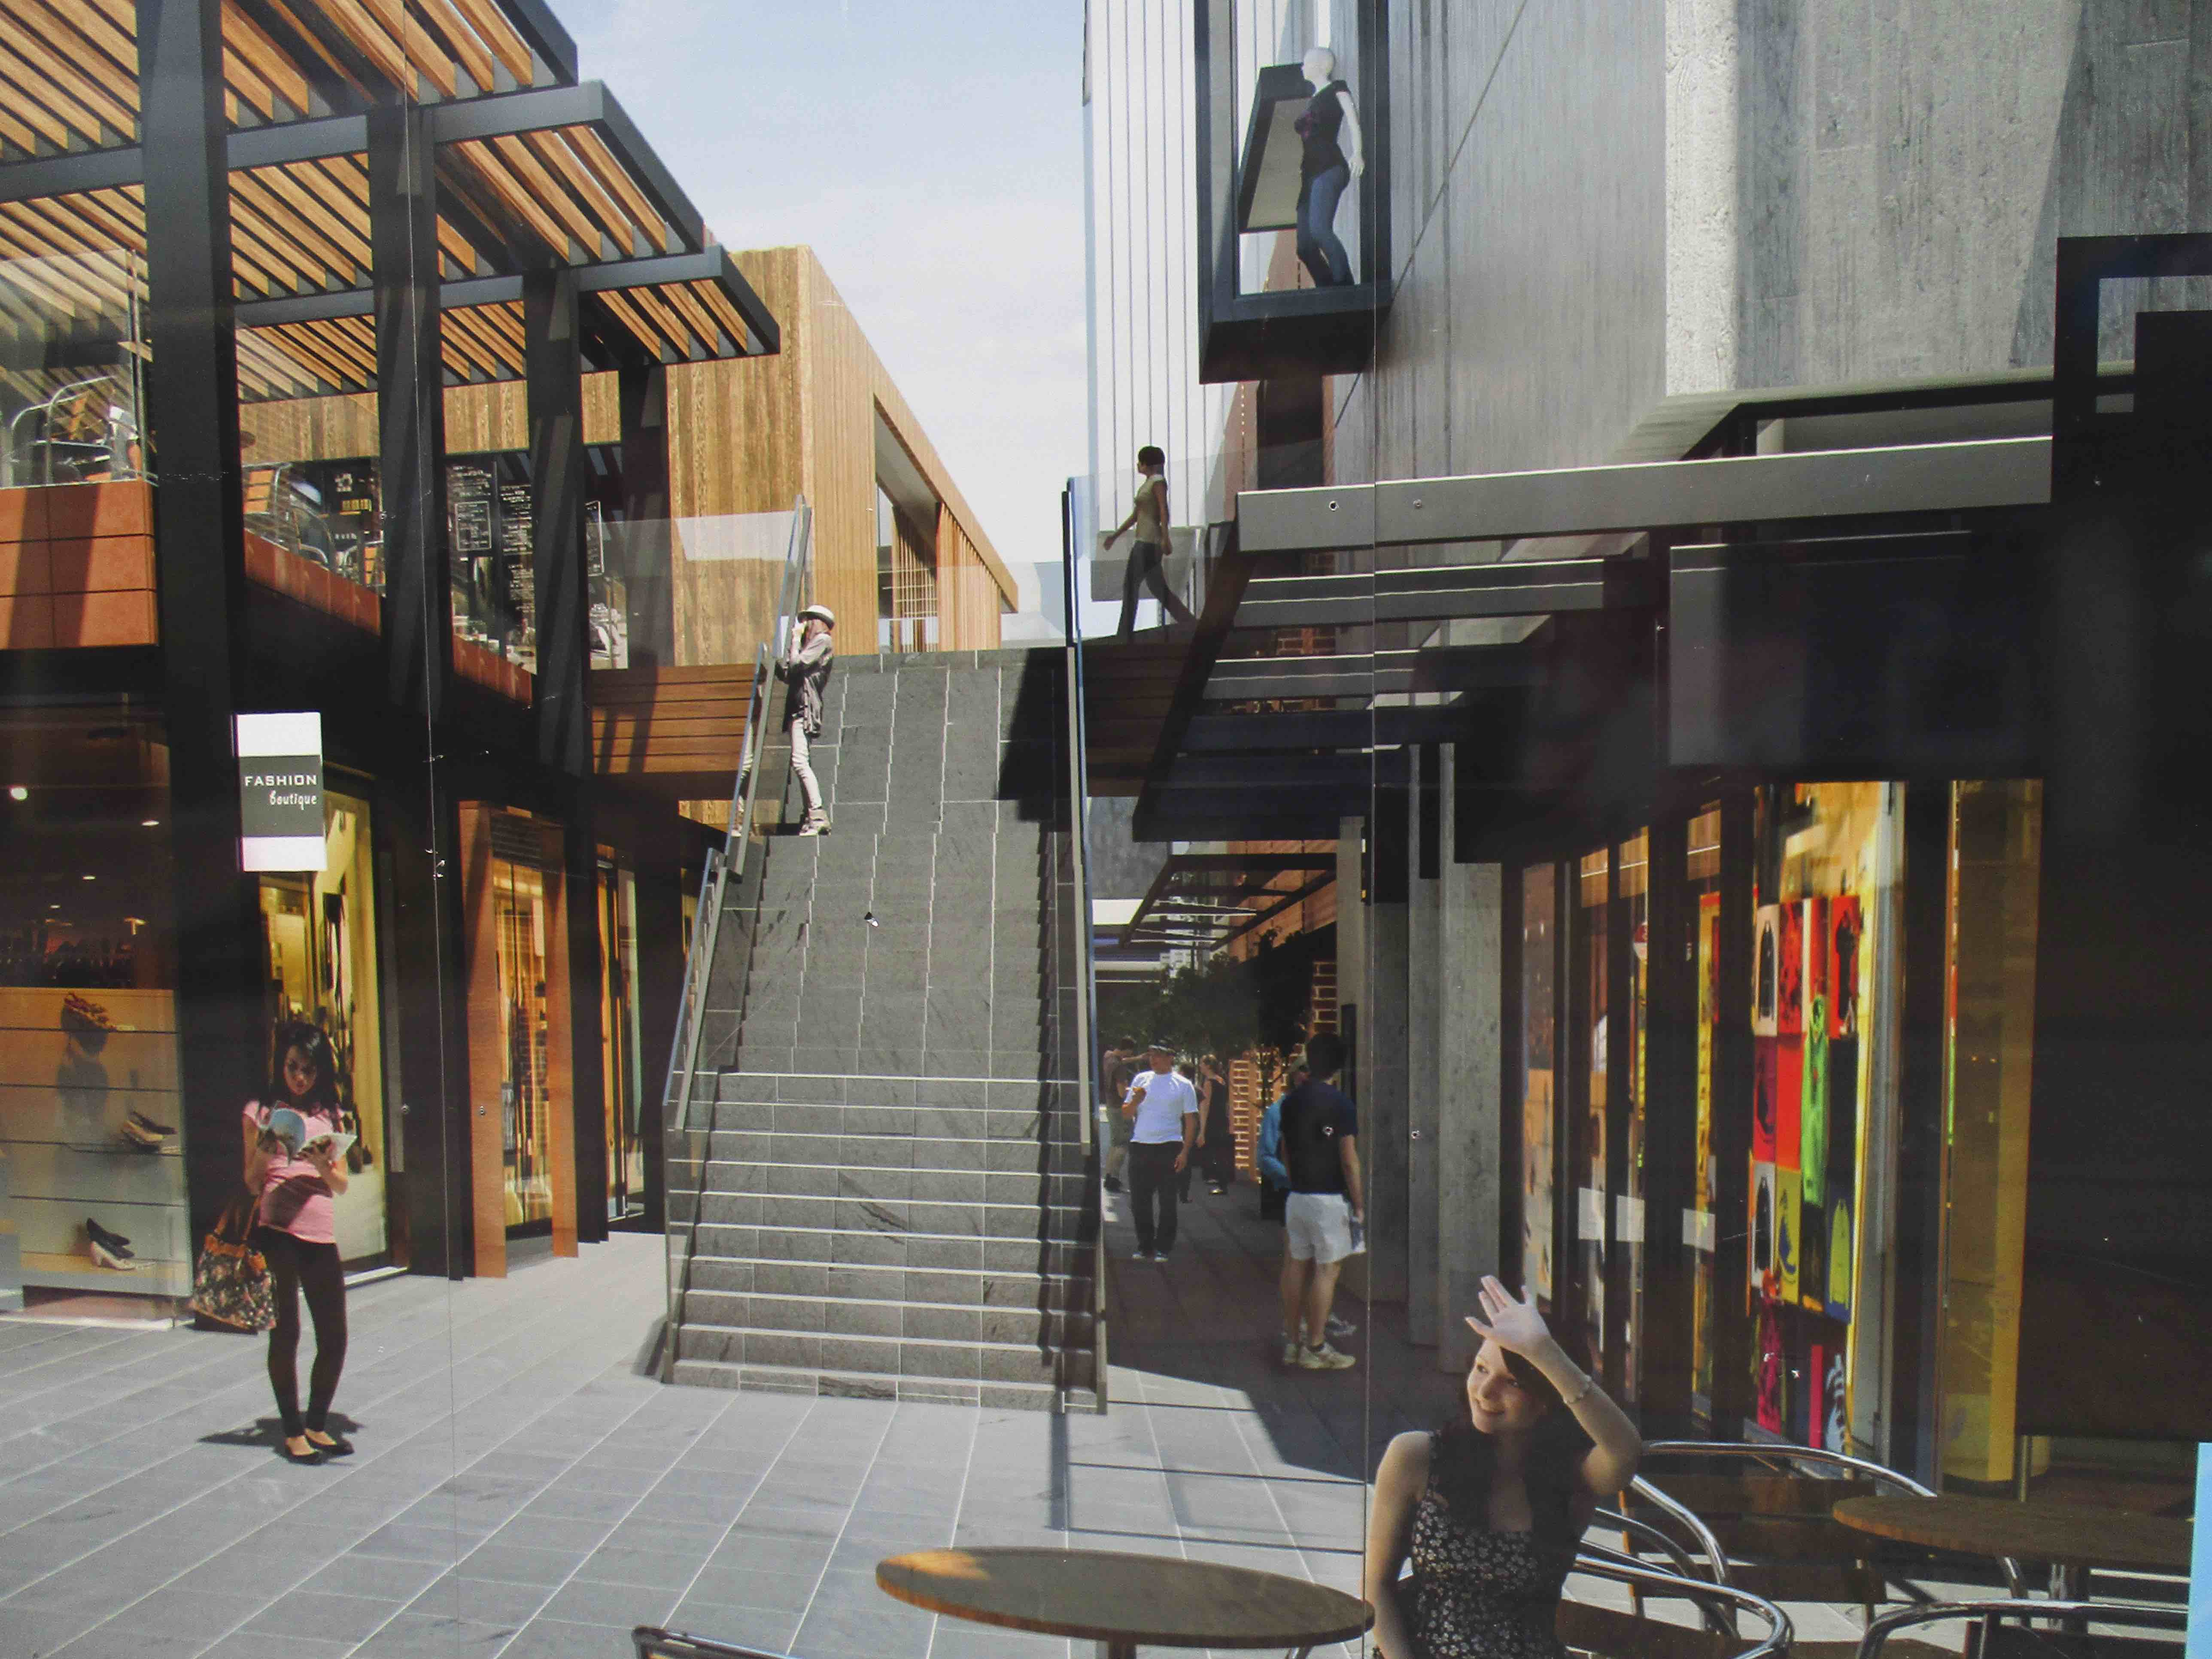 Plans and reality in central city christchurch how graphic design its nearly impossible as a resident to imagine the future of christchurch we can gather some information through what is given to us considering how the malvernweather Image collections